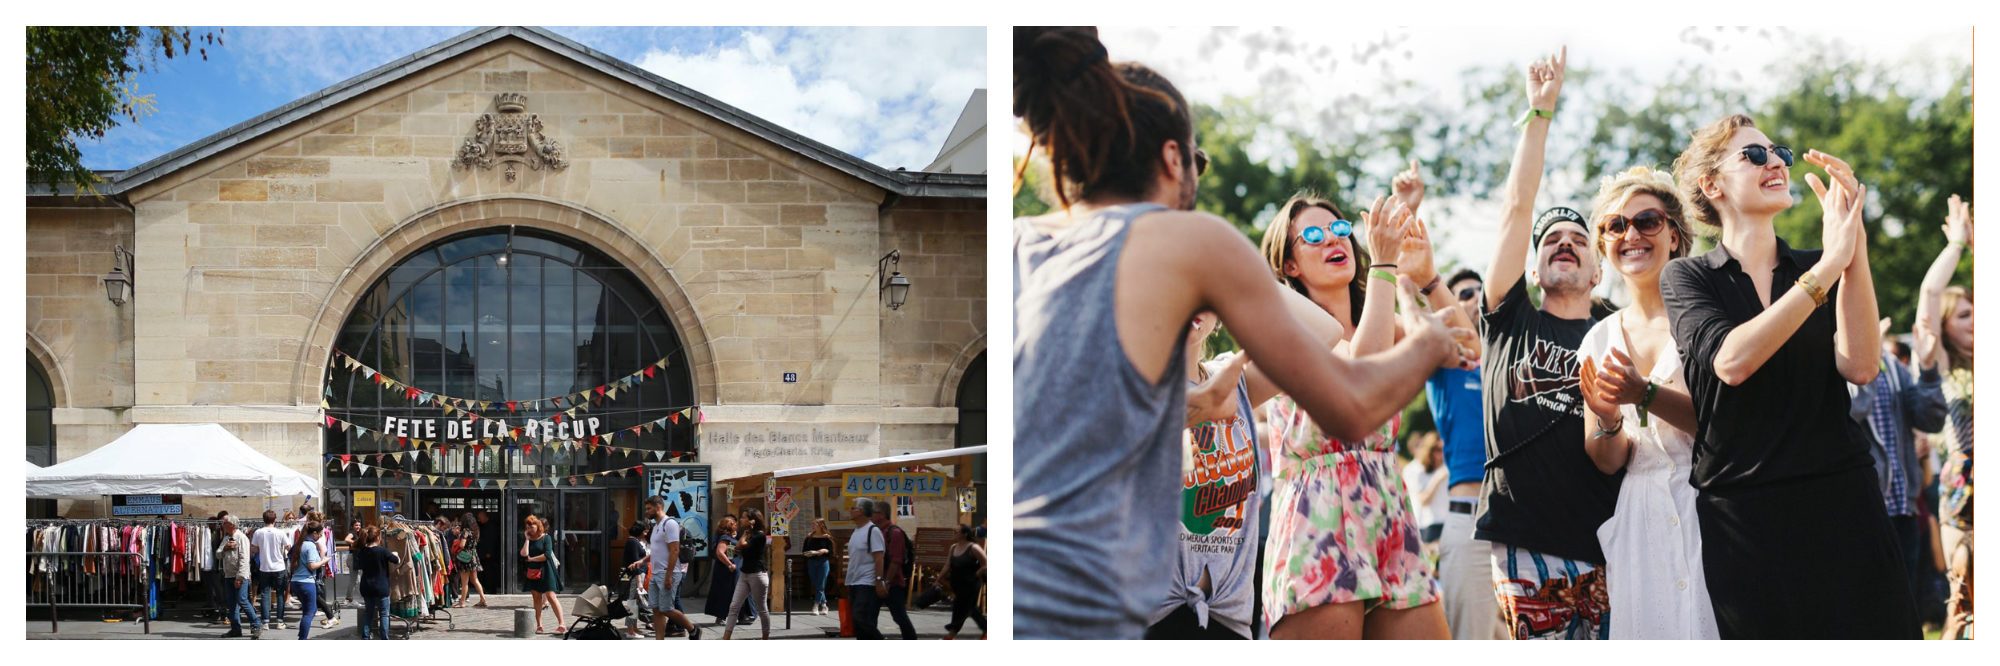 The Fête de la Récup upcylcing event in Paris will take place in the Marais (left). People enjoying the We Love Green music festival in Paris this June (right).